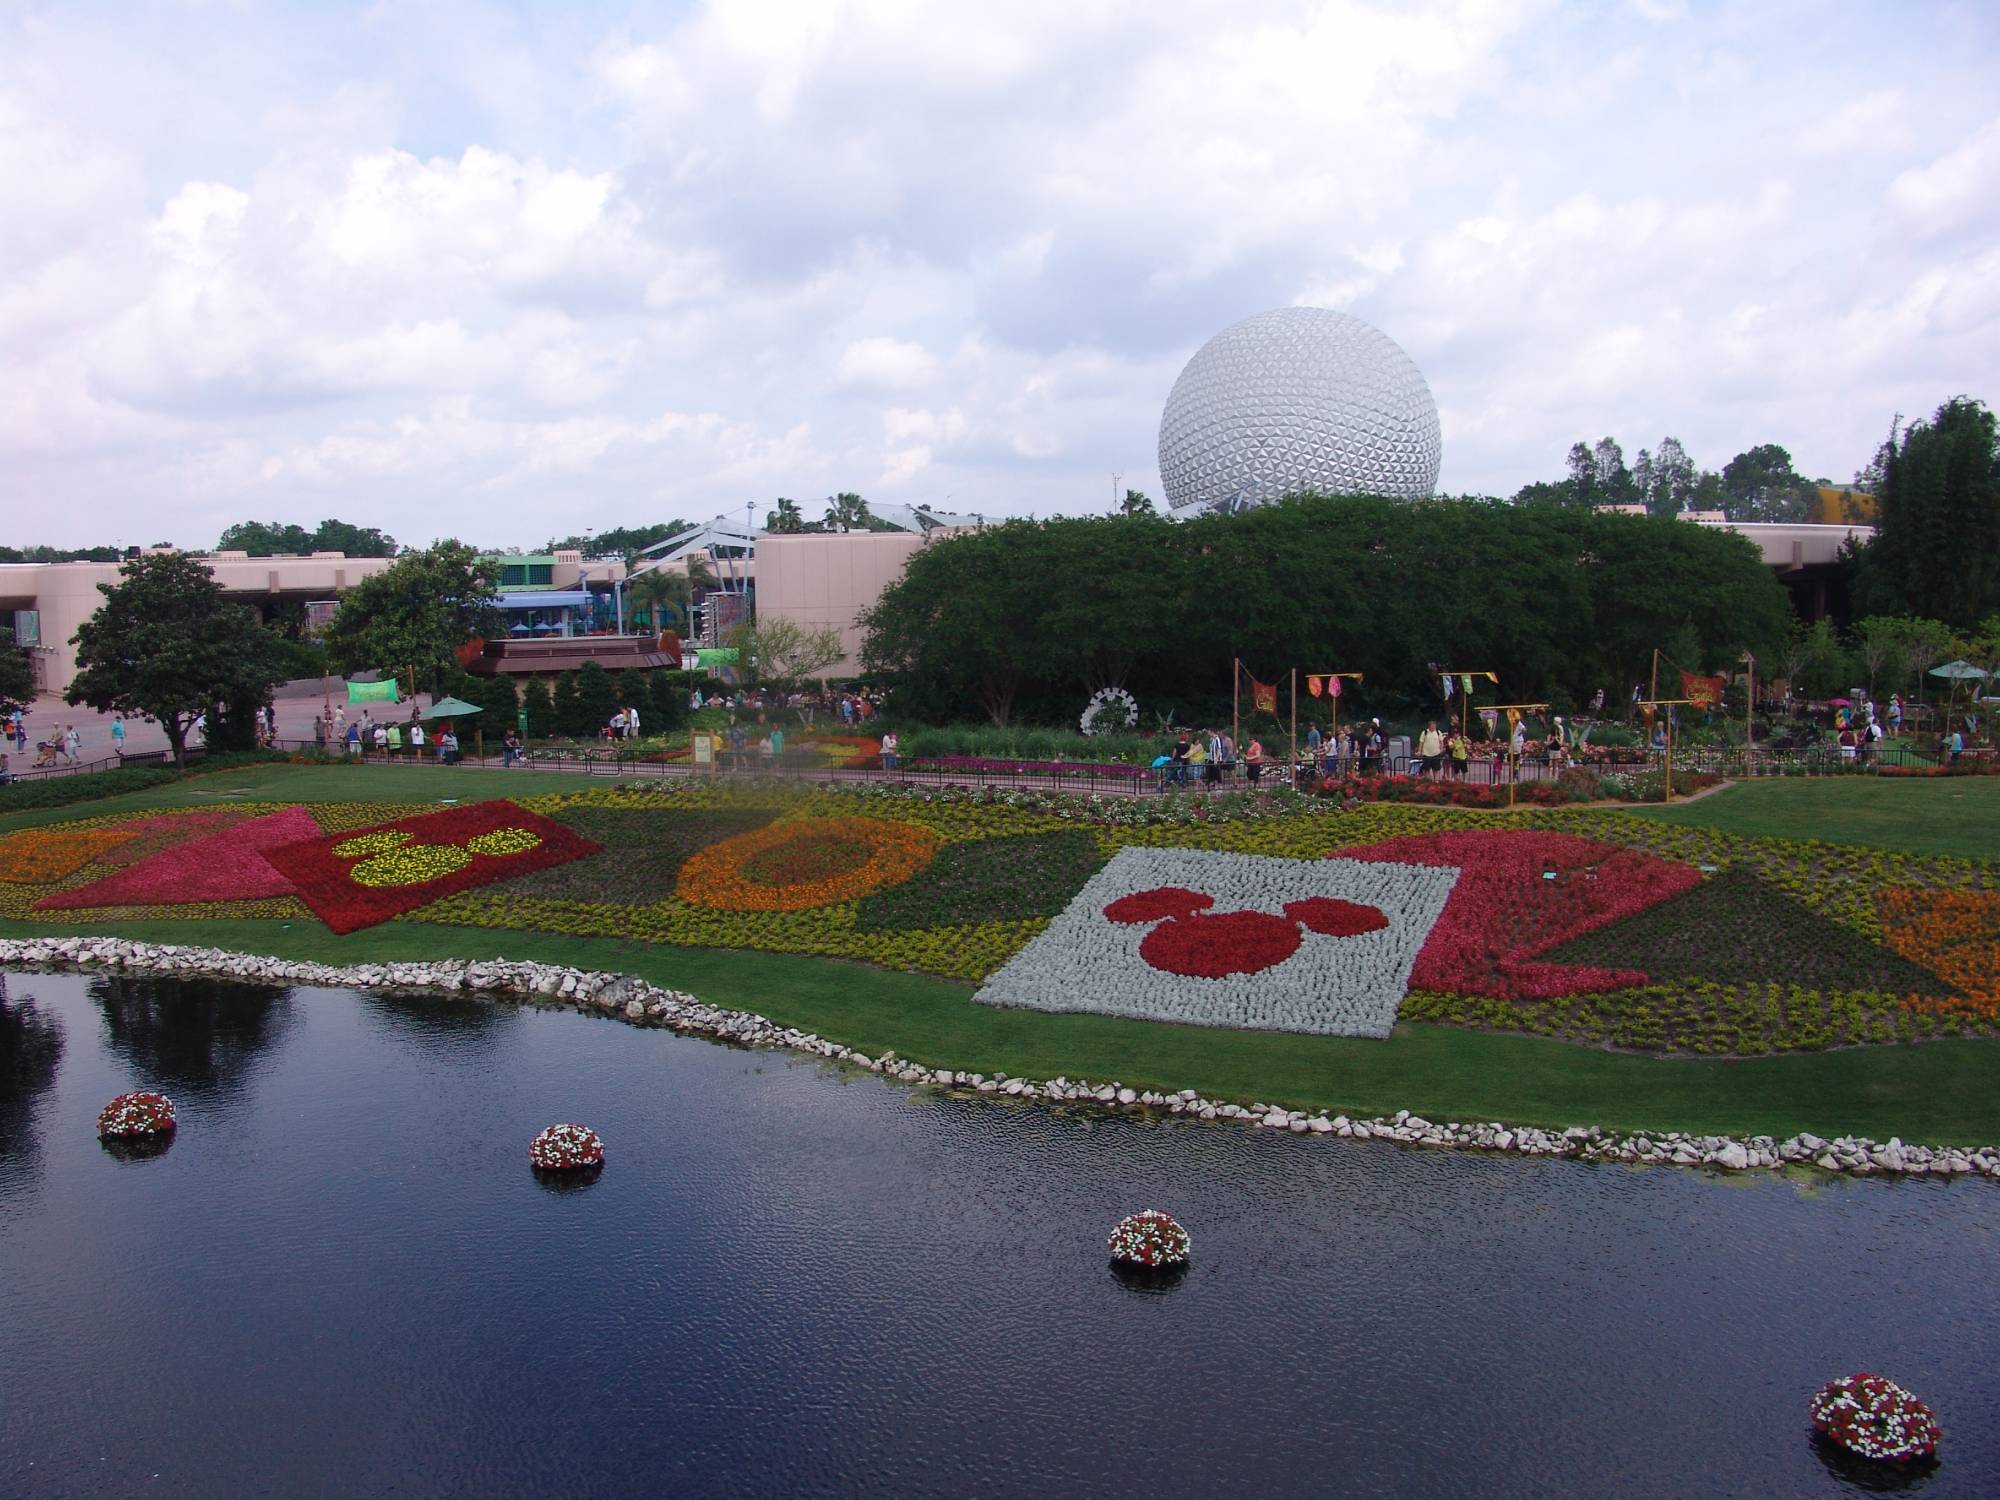 Explore Epcot and find the most picturesque spots | PassPorter.com